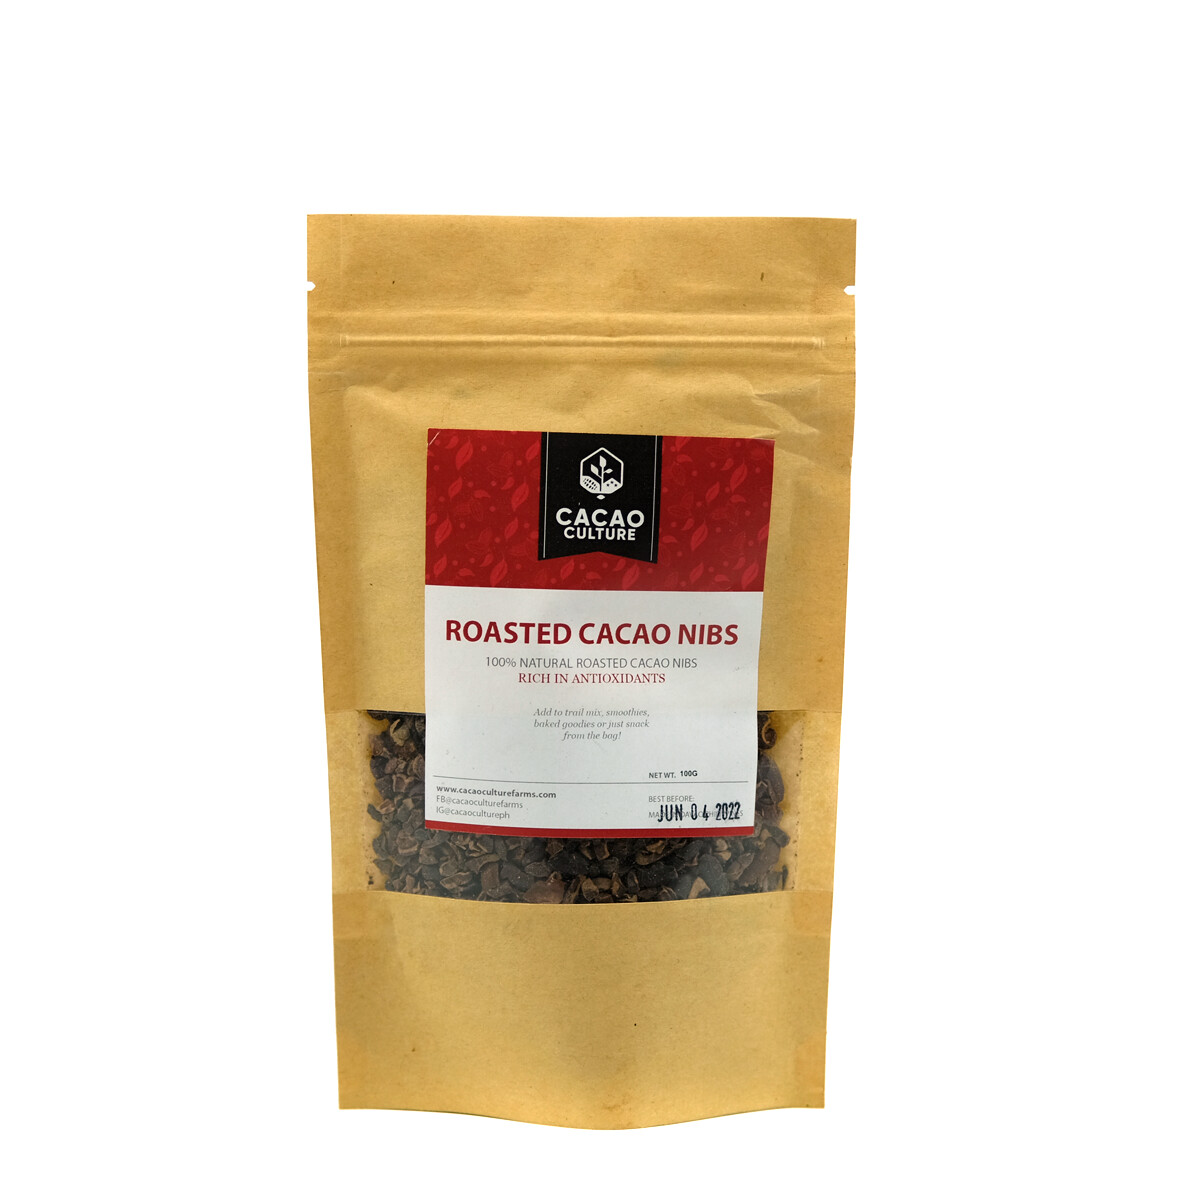 Cacao Culture Roasted Cacao Nibs